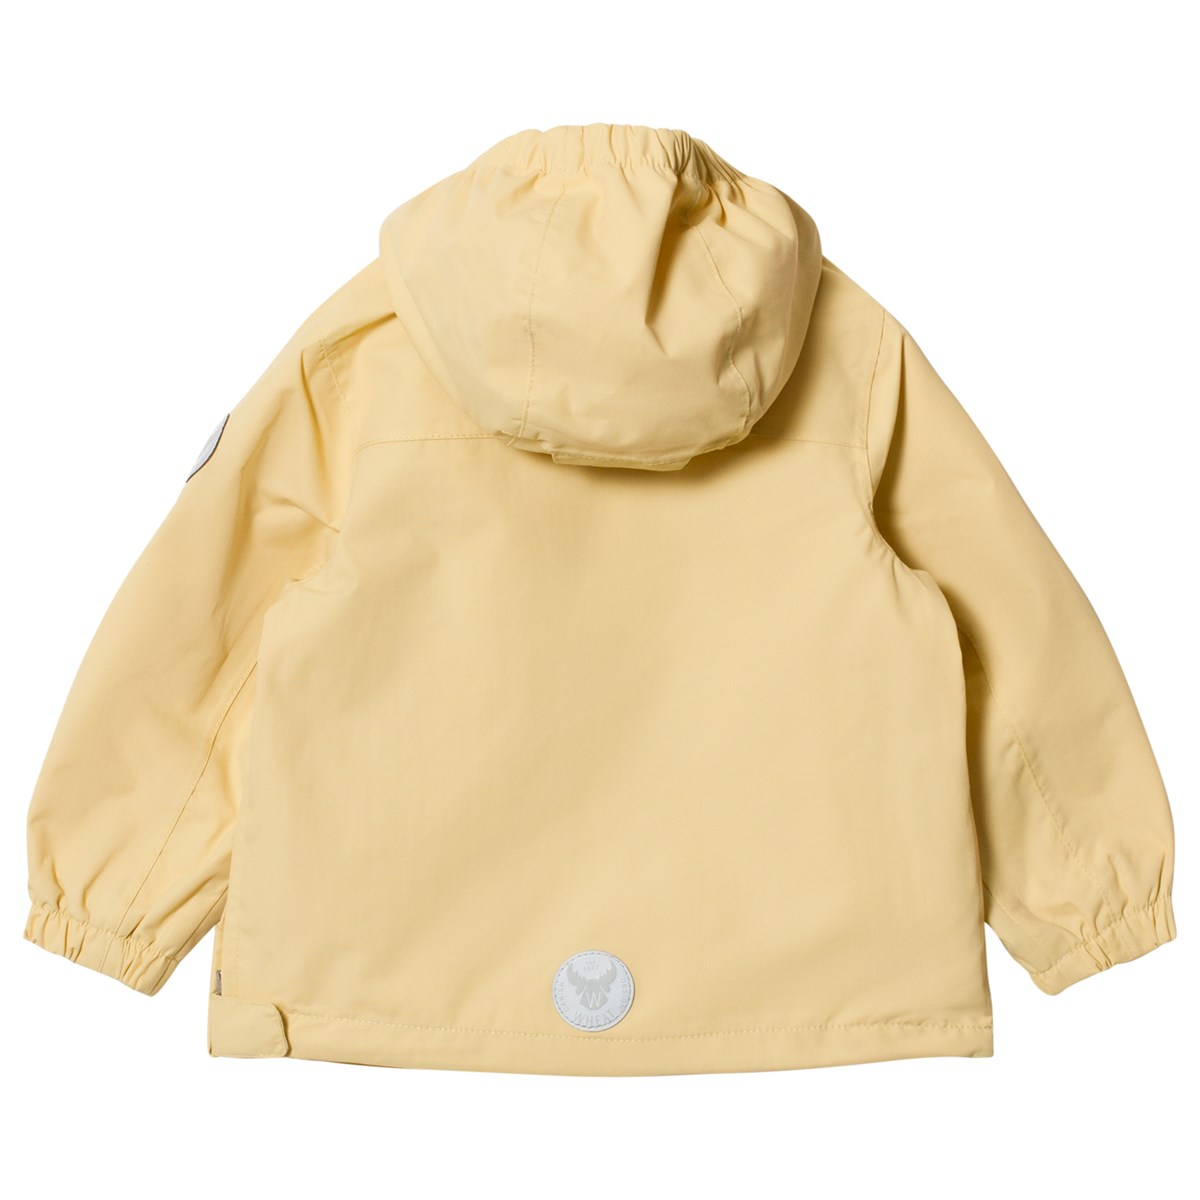 5f44d1197f3 Jacket Noor Straw - Wheat - Babyshop